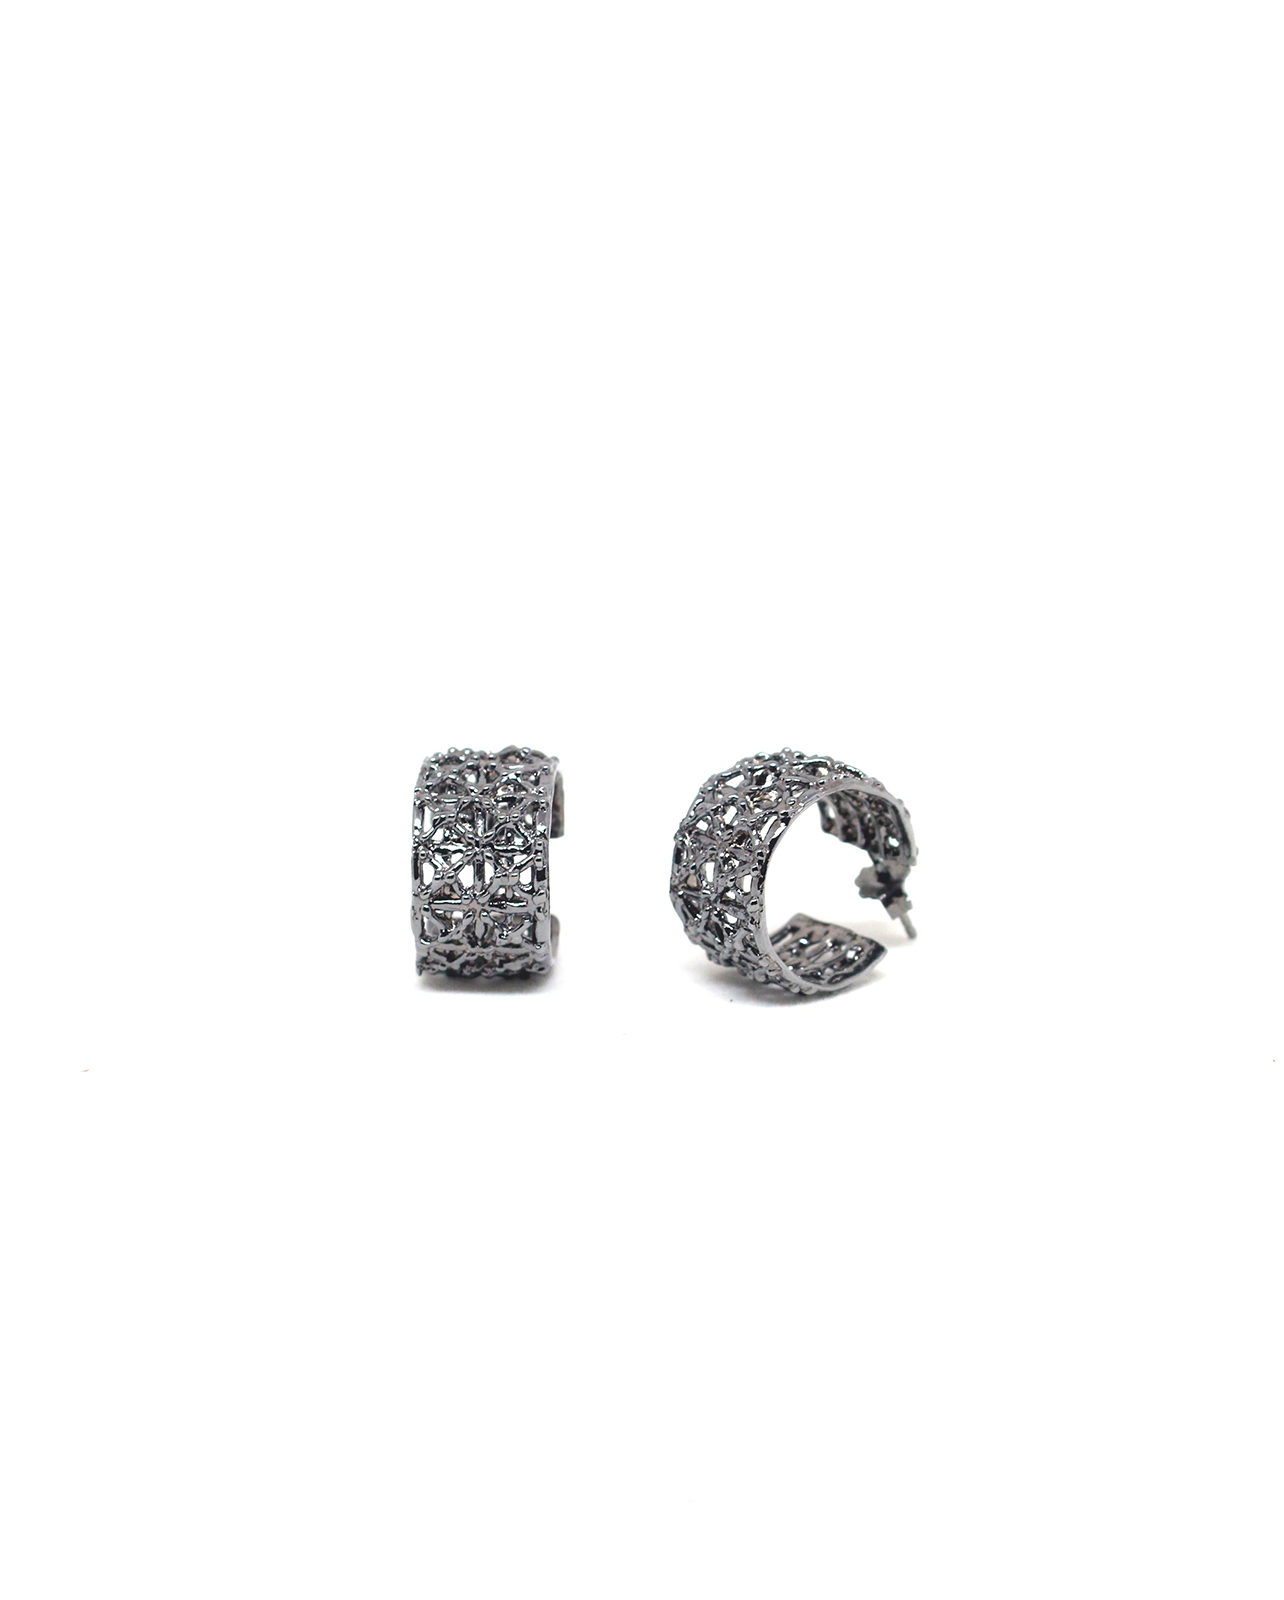 Gasometer Ruthenium Earrings | Industrial Archeology Collection by Co.Ro. Jewels